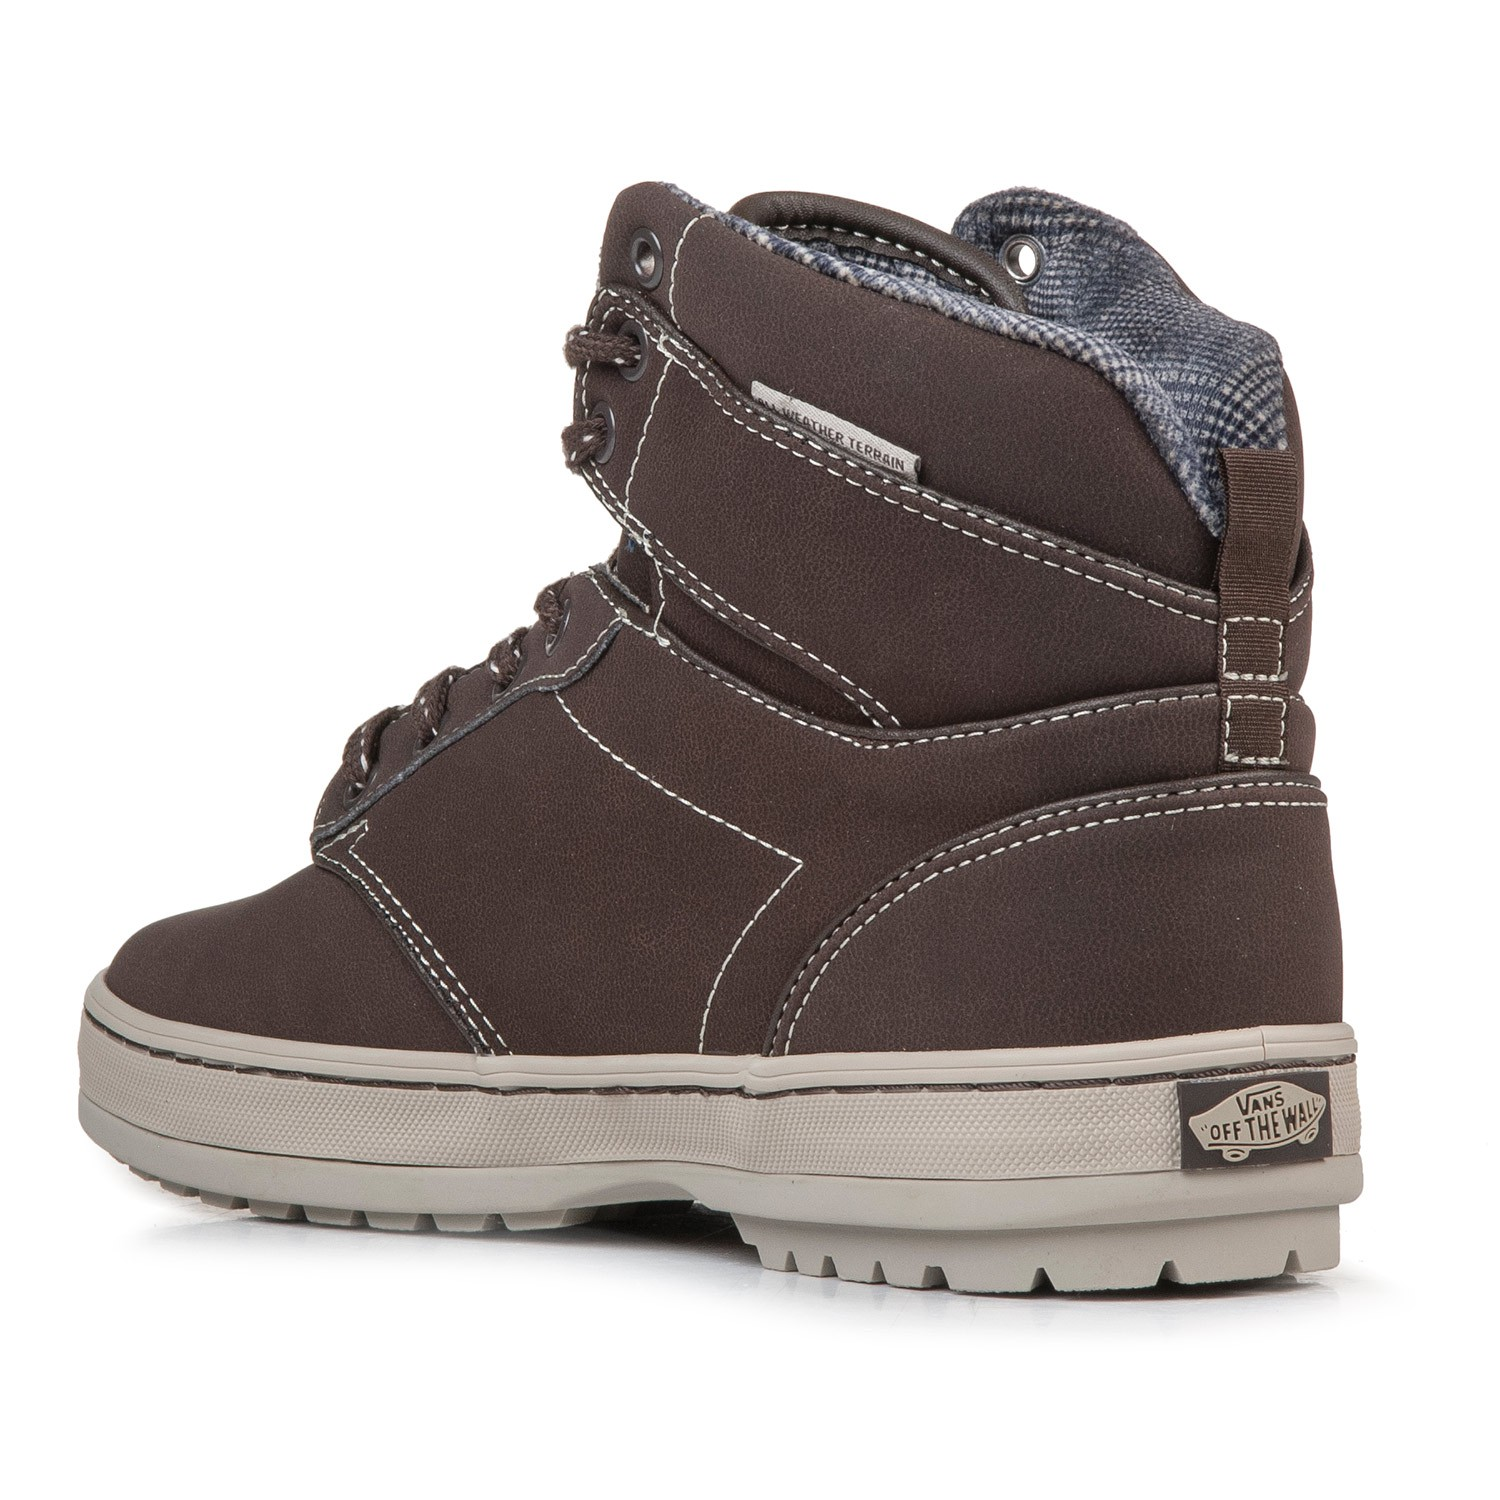 vans atwood boot brown